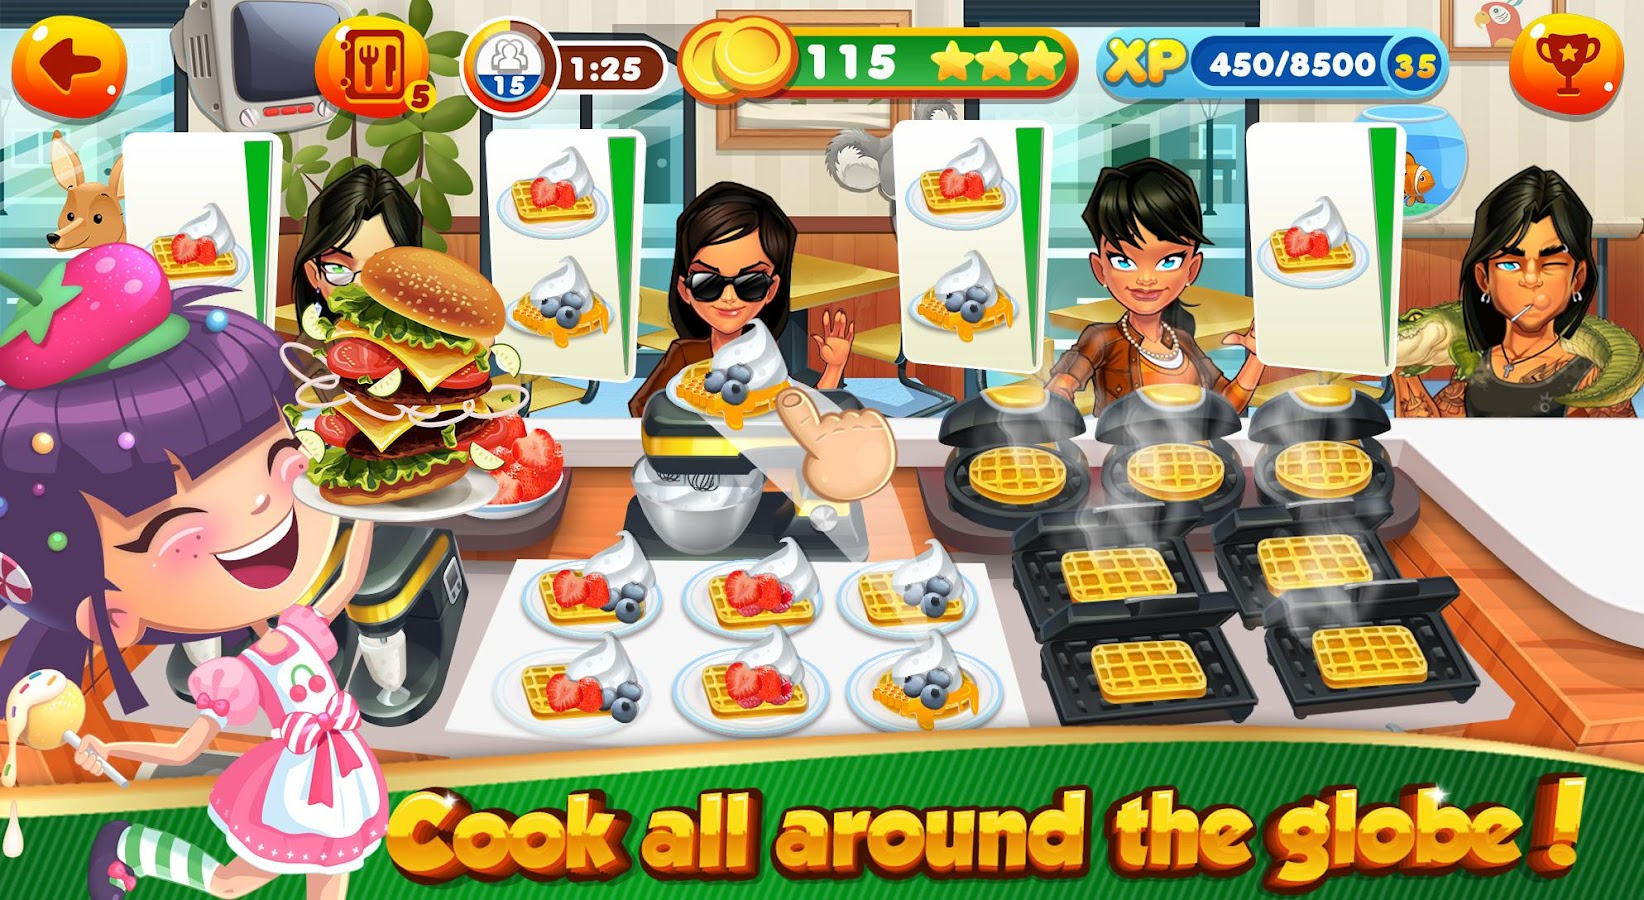 Selection of cartoons on cooking kitchens food and eating - Cooking Games For Girls Kitchen Chef Food Maker Screenshot